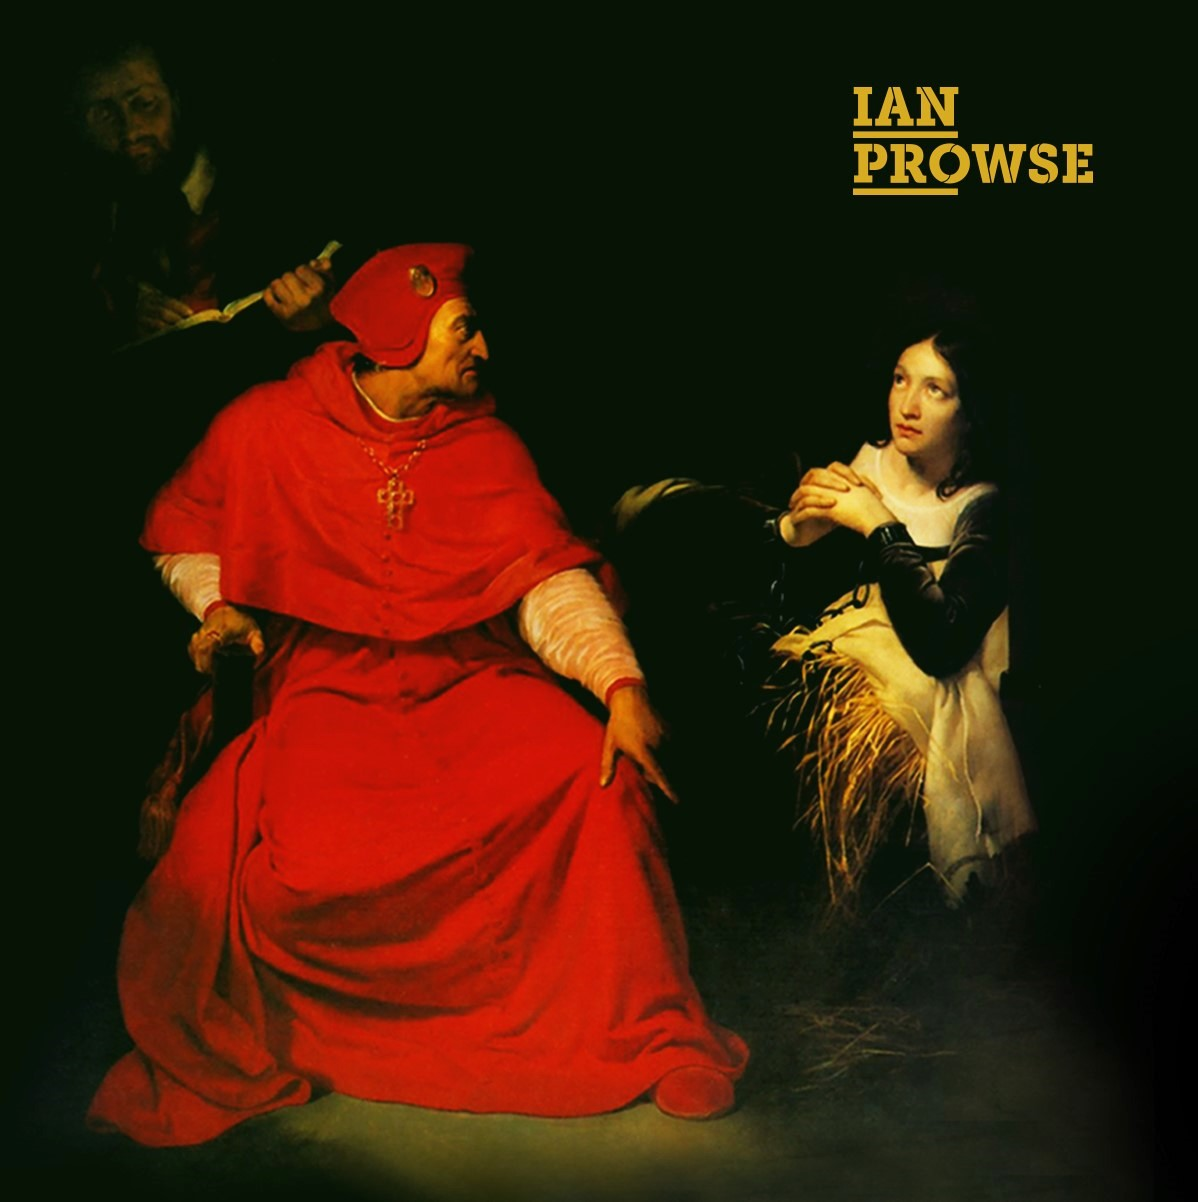 Ian Prowse And Amsterdam For All Your Pele Amsterdam